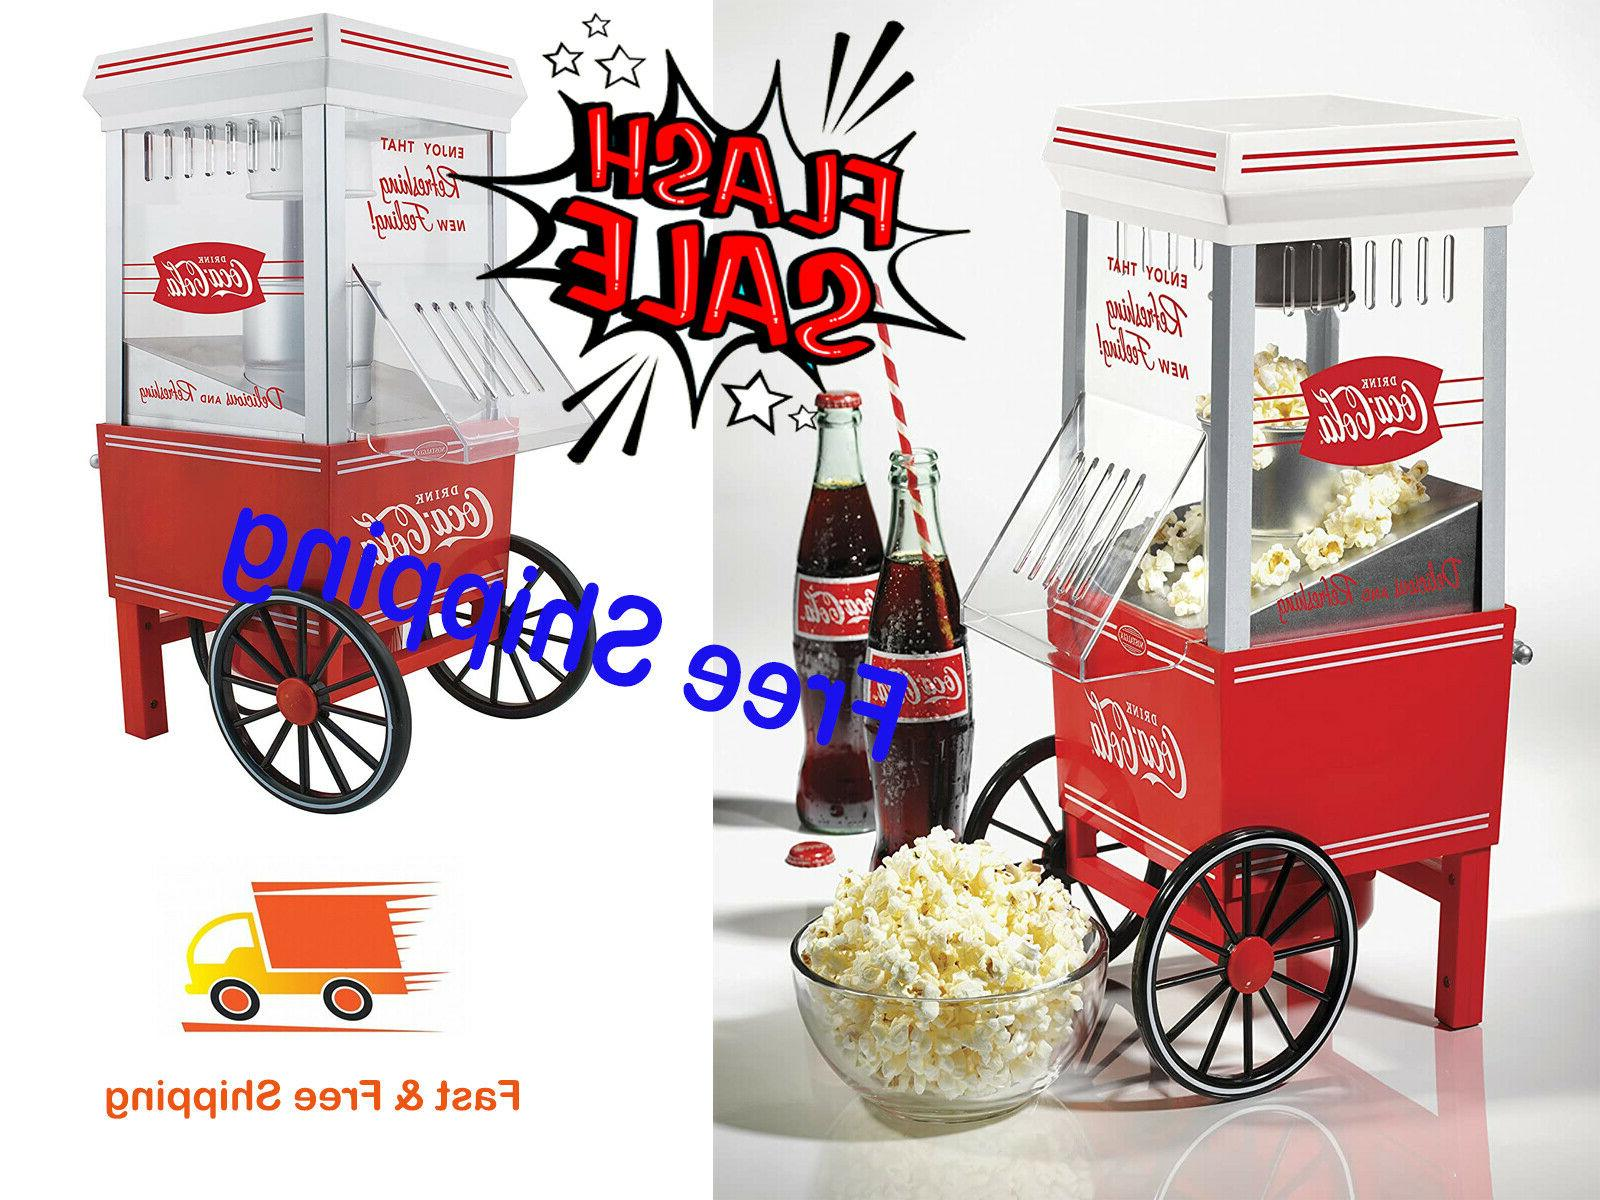 cocacola series air popcorn maker